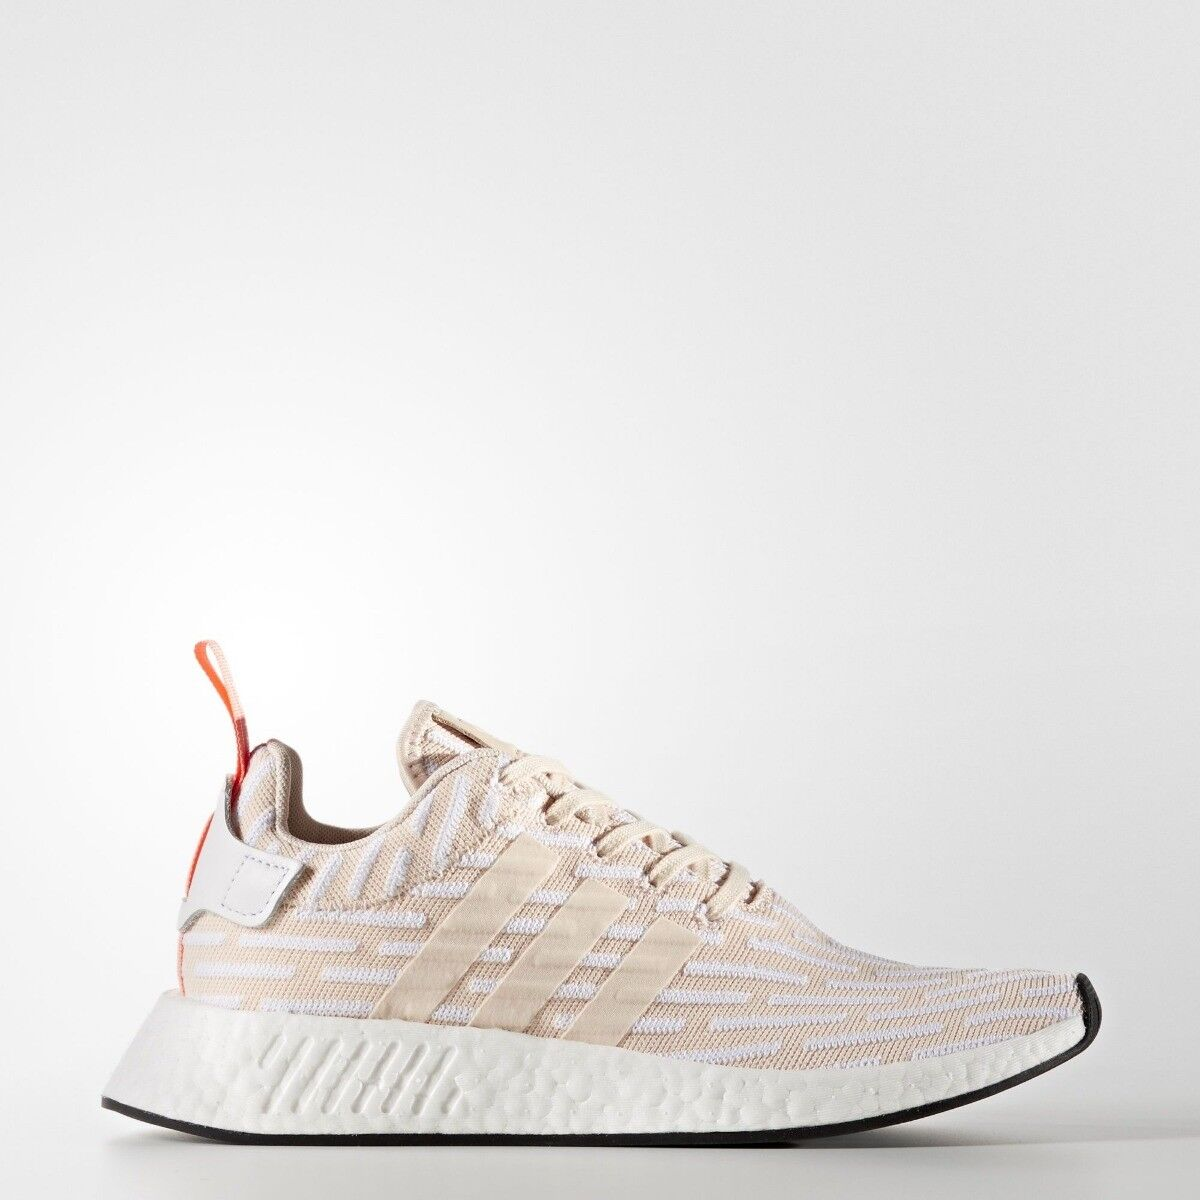 adidas ORIGINALS NMD_R2 W TRAINERS TRAINERS TRAINERS Femme fonctionnement chaussures Taille 5 - 7.5  100/- 70e2ff